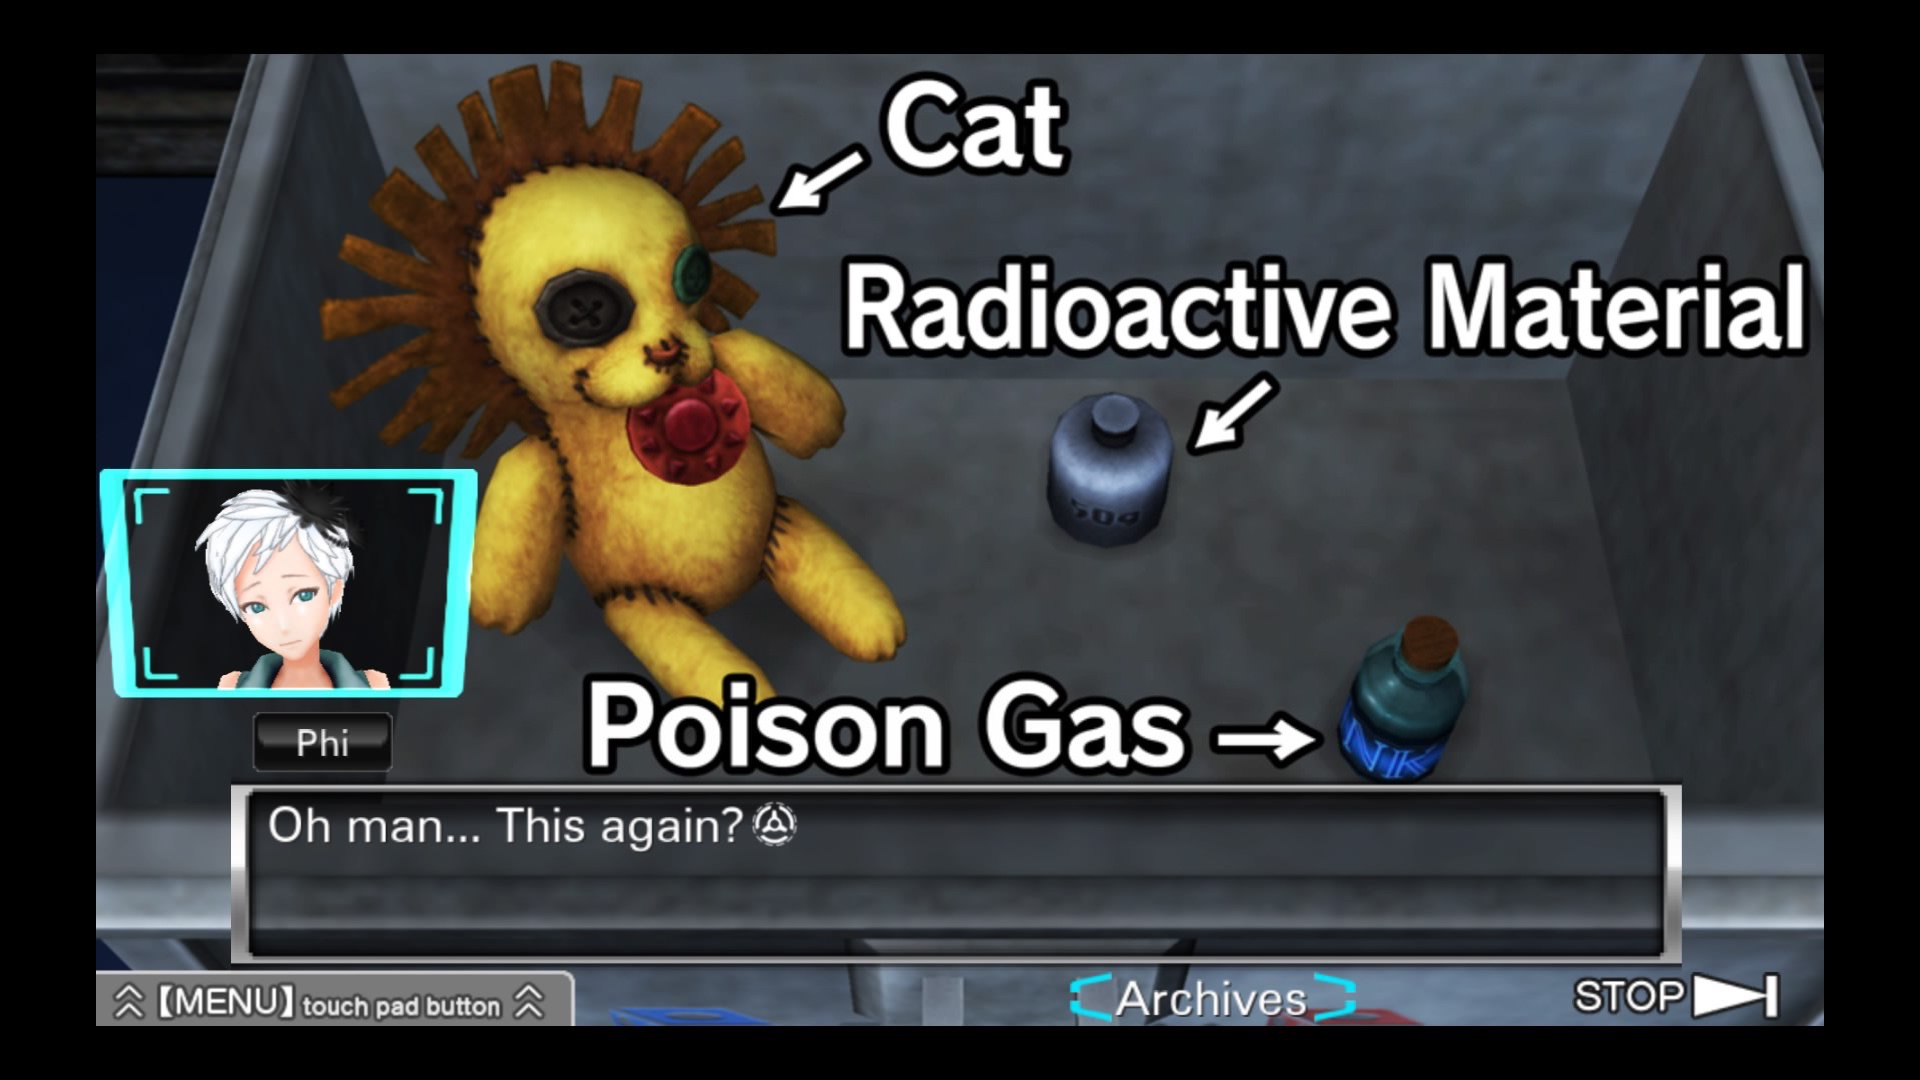 A video-game screenshot showing a box containing items labeled 'Cat', 'Radioactive material', and 'Poison gas'. A young woman, labeled 'Phi', is saying: 'Oh man... this again?'